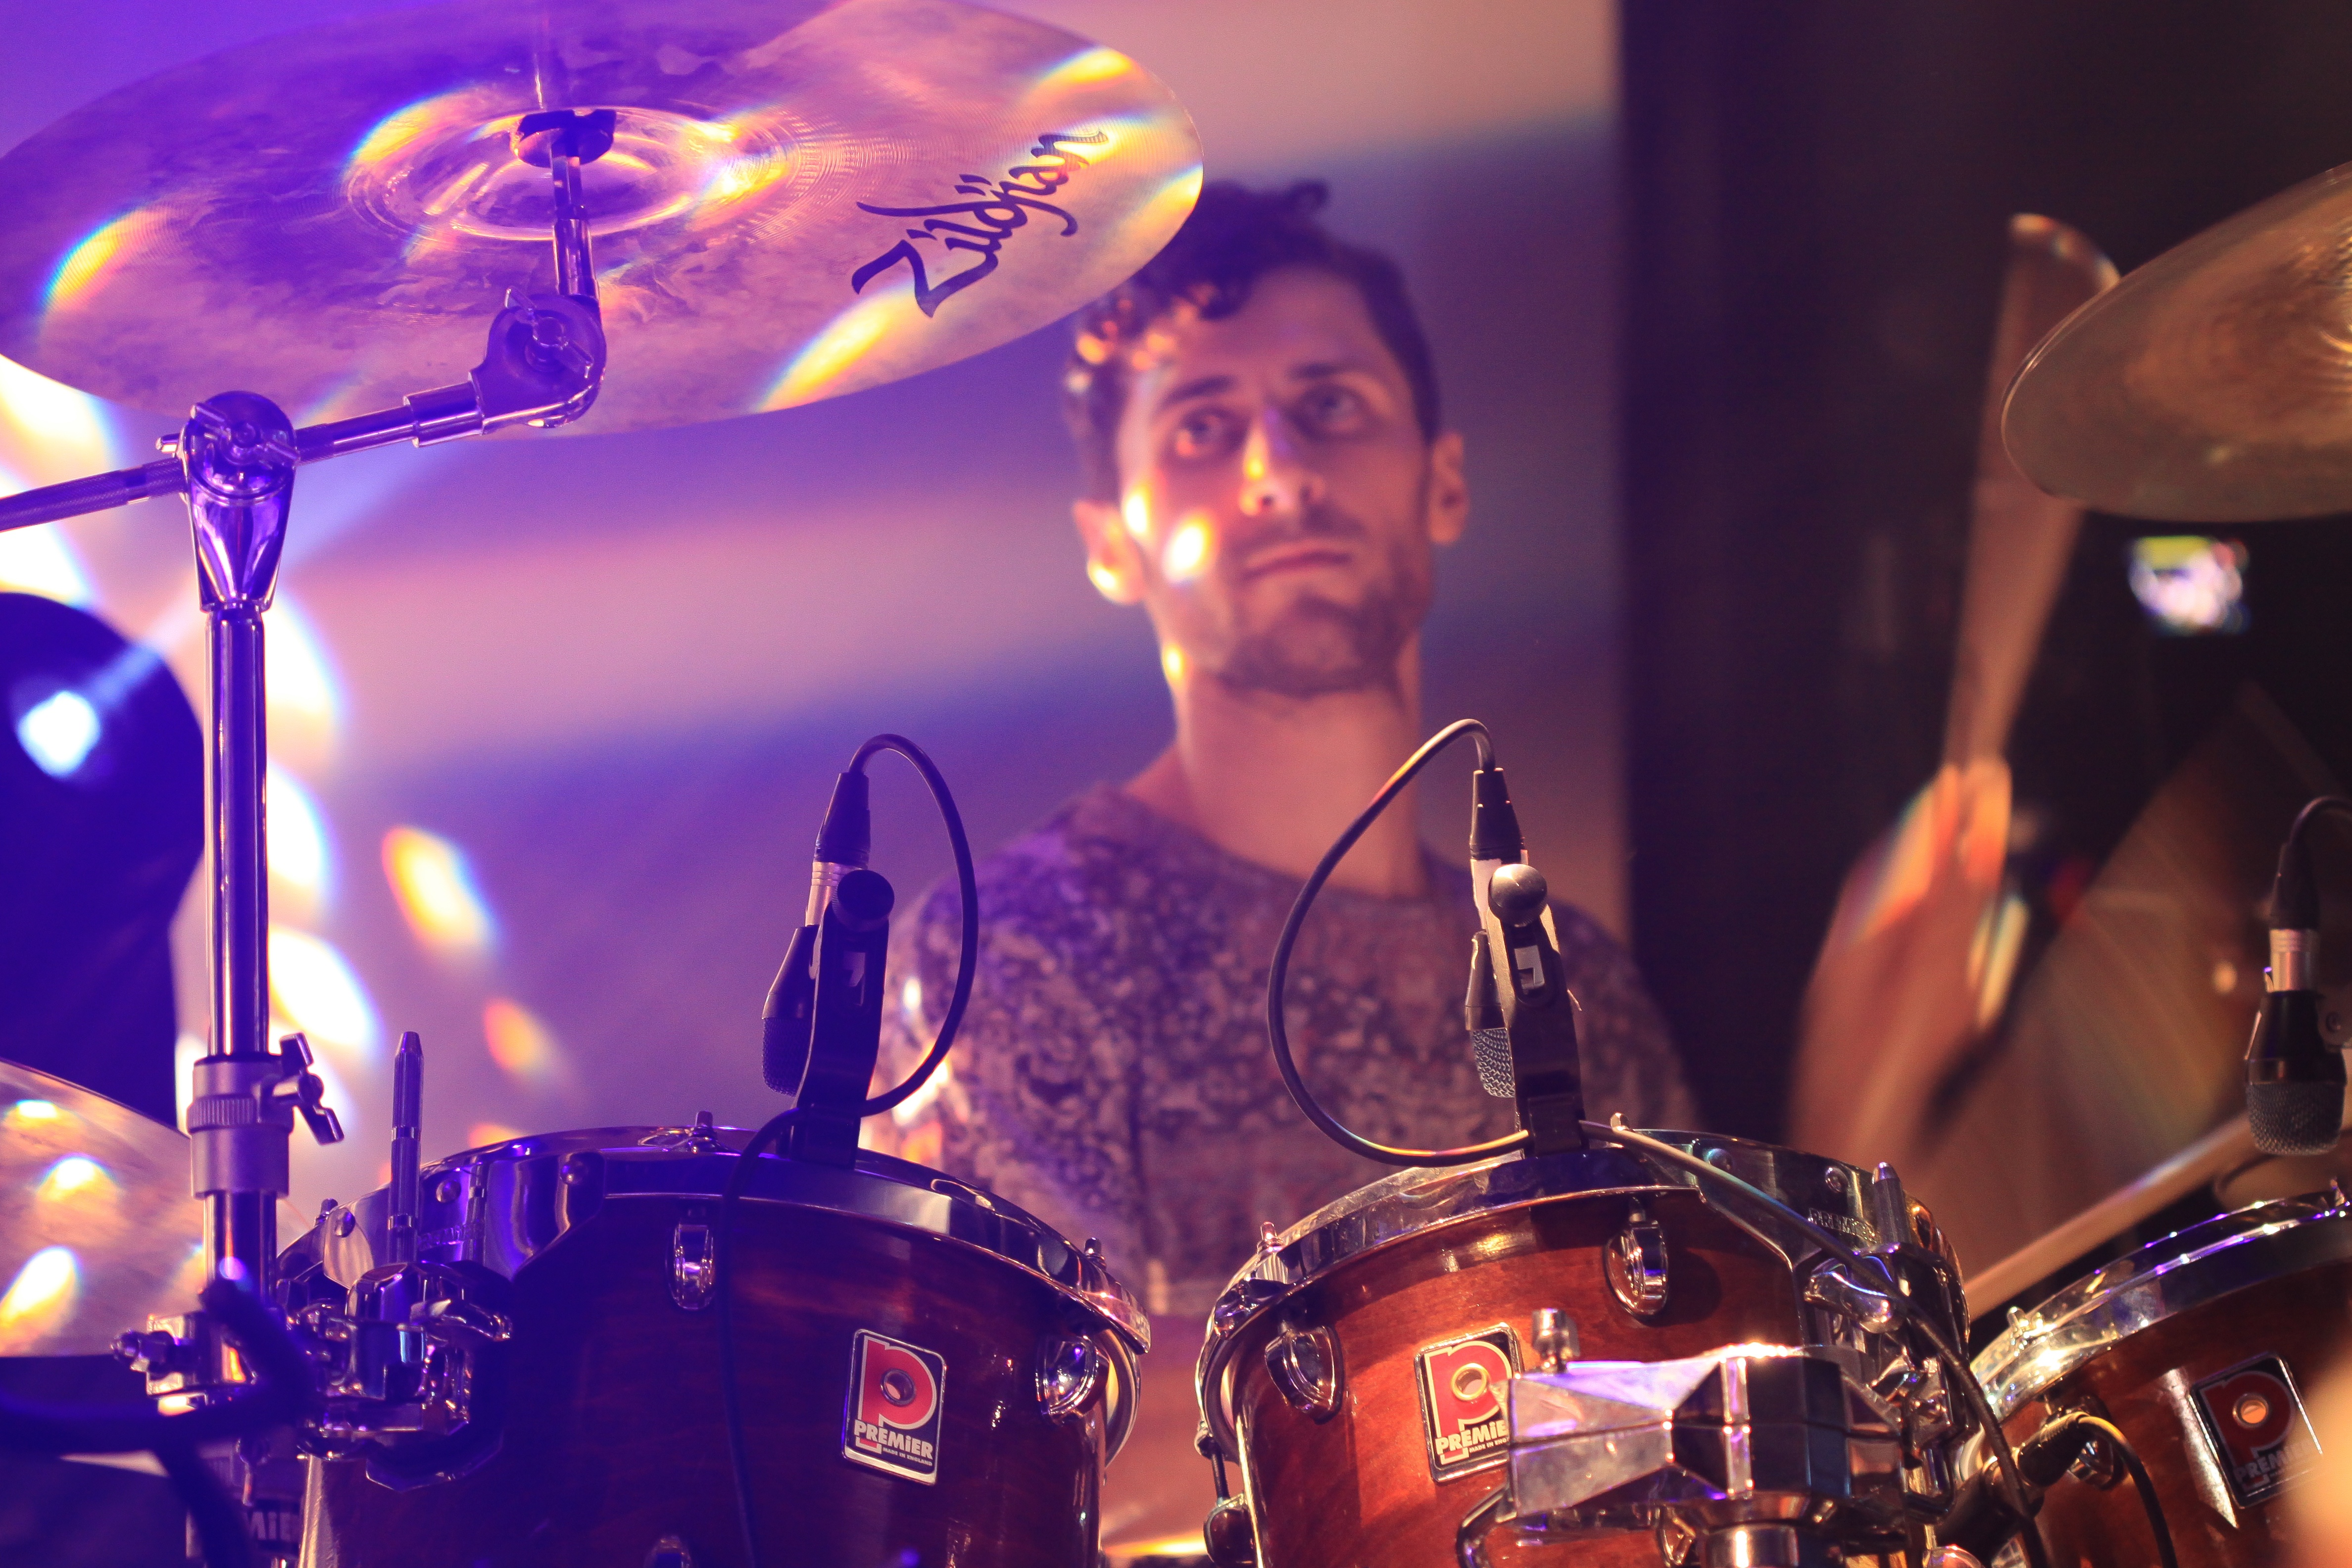 A Production Coordinator, but Still a Drummer Looking for a Good, Steady Rhythm: Robotiq's Gabriel Larivière